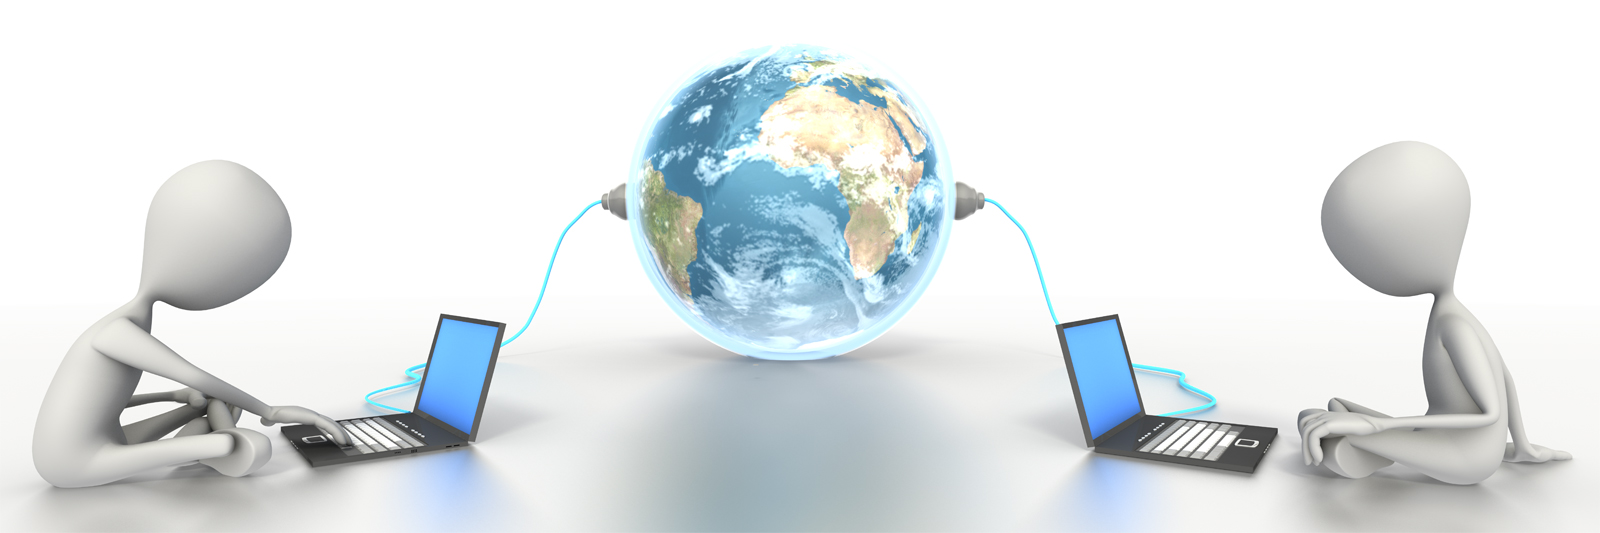 Communicating Over Computer Network